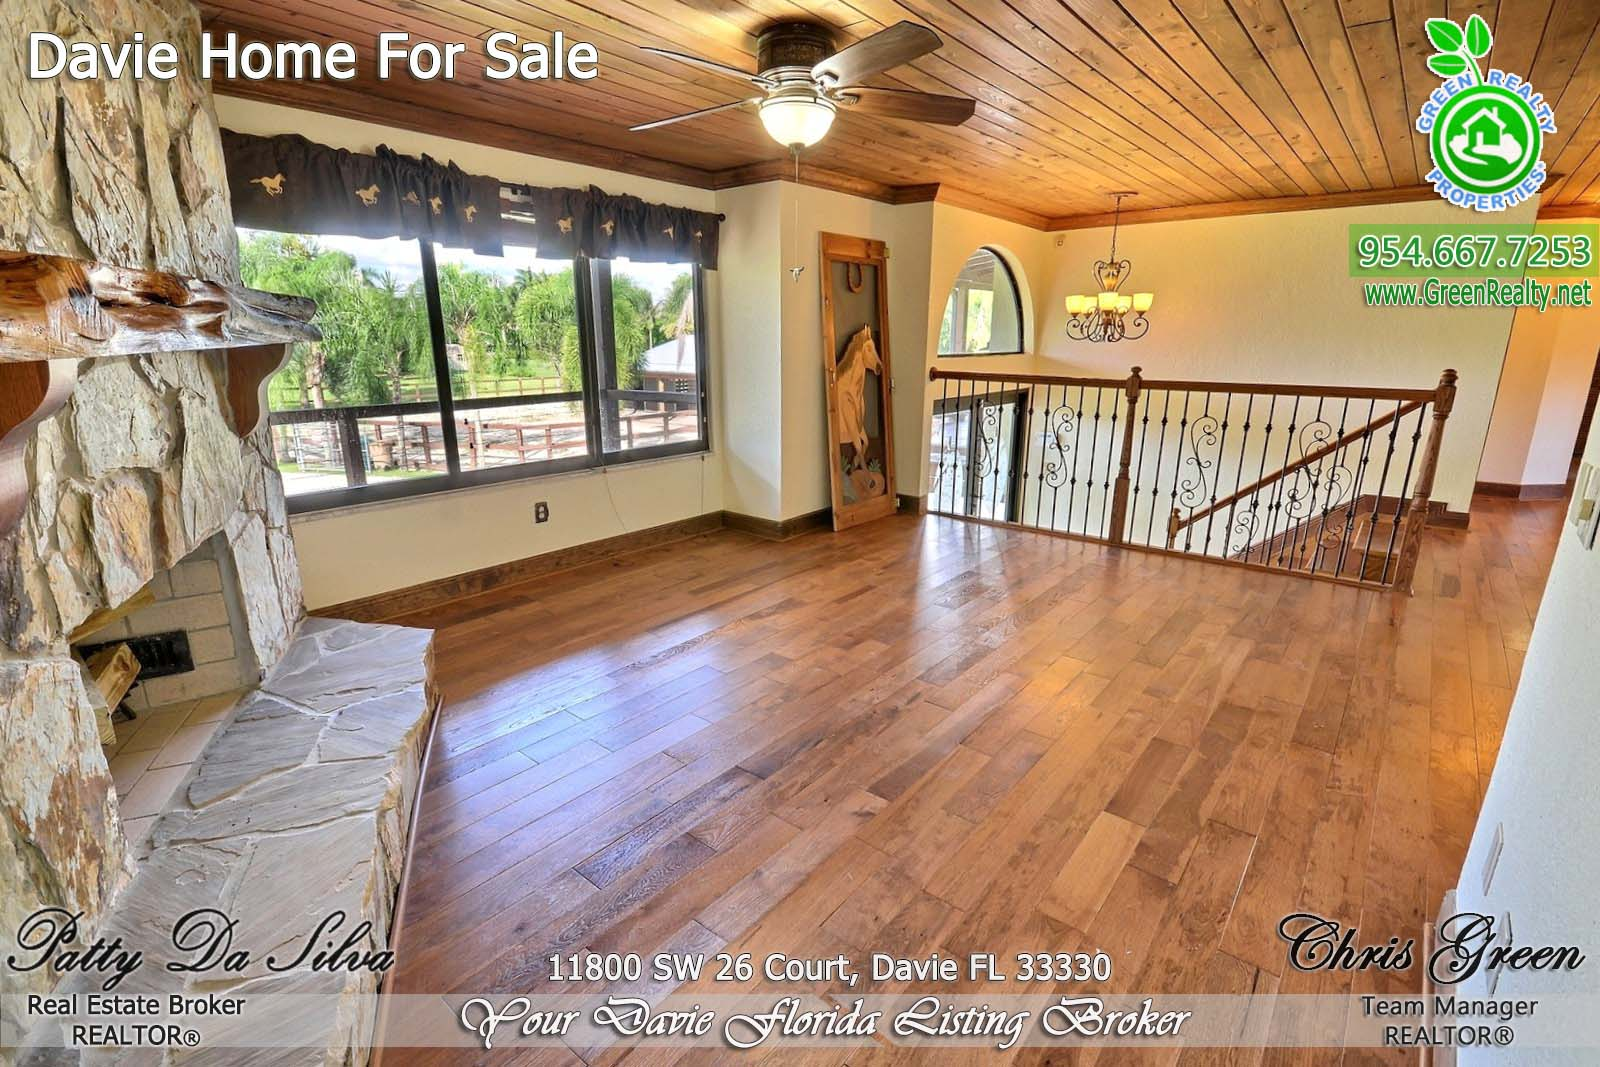 22 Davie Equestrian Homes For Sale (5)